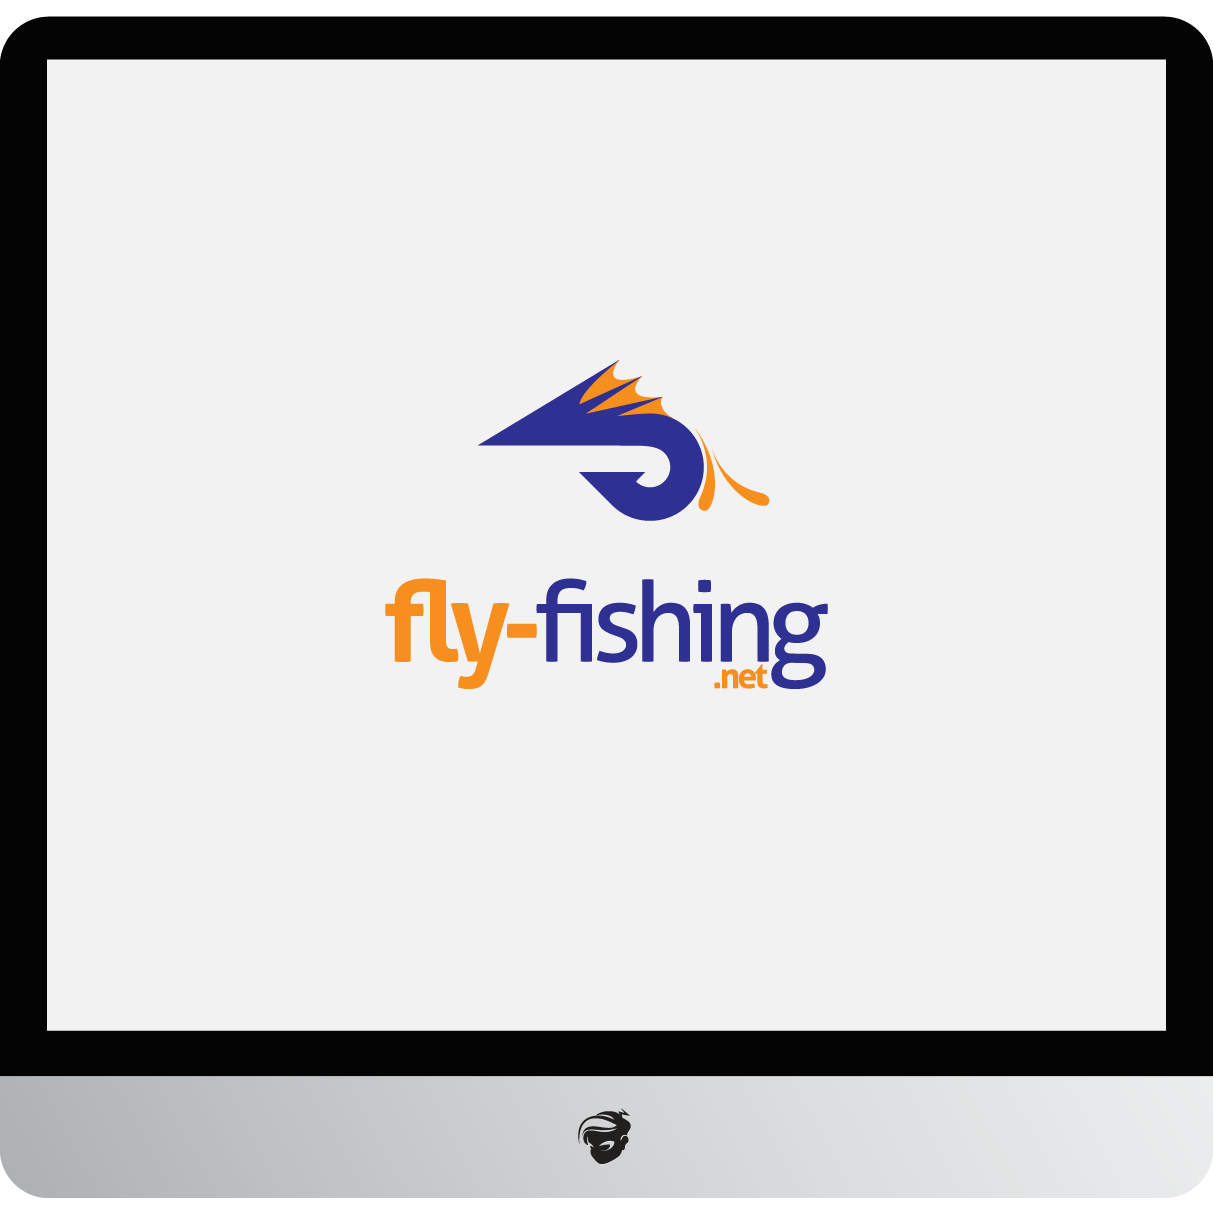 Logo Design by zesthar - Entry No. 133 in the Logo Design Contest Artistic Logo Design for fly-fishing.net.